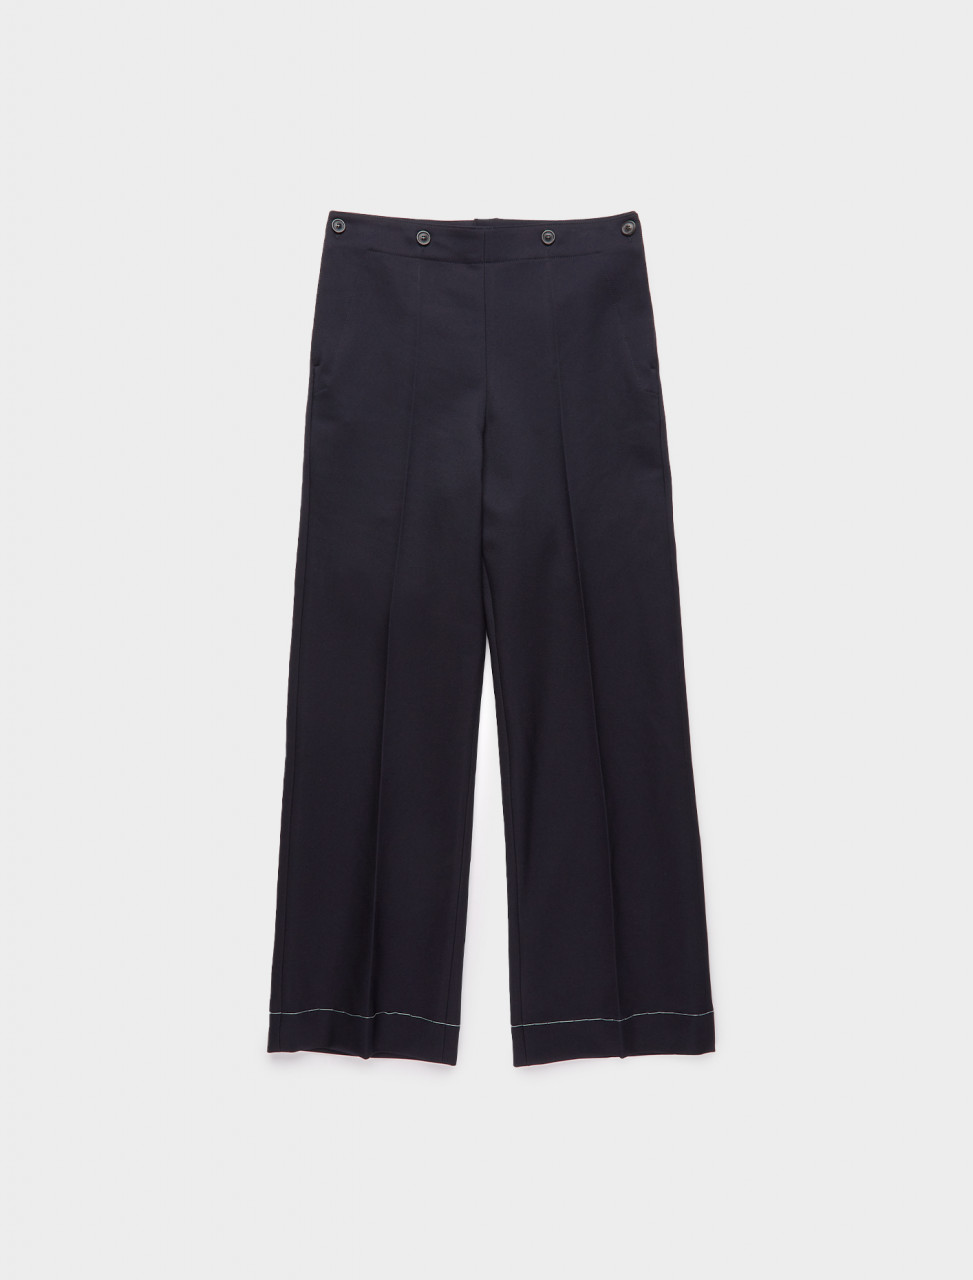 256-S30KA0594-S52332-510 MAISON MARGIELA WIDE LEG TROUSER DARK BLUE